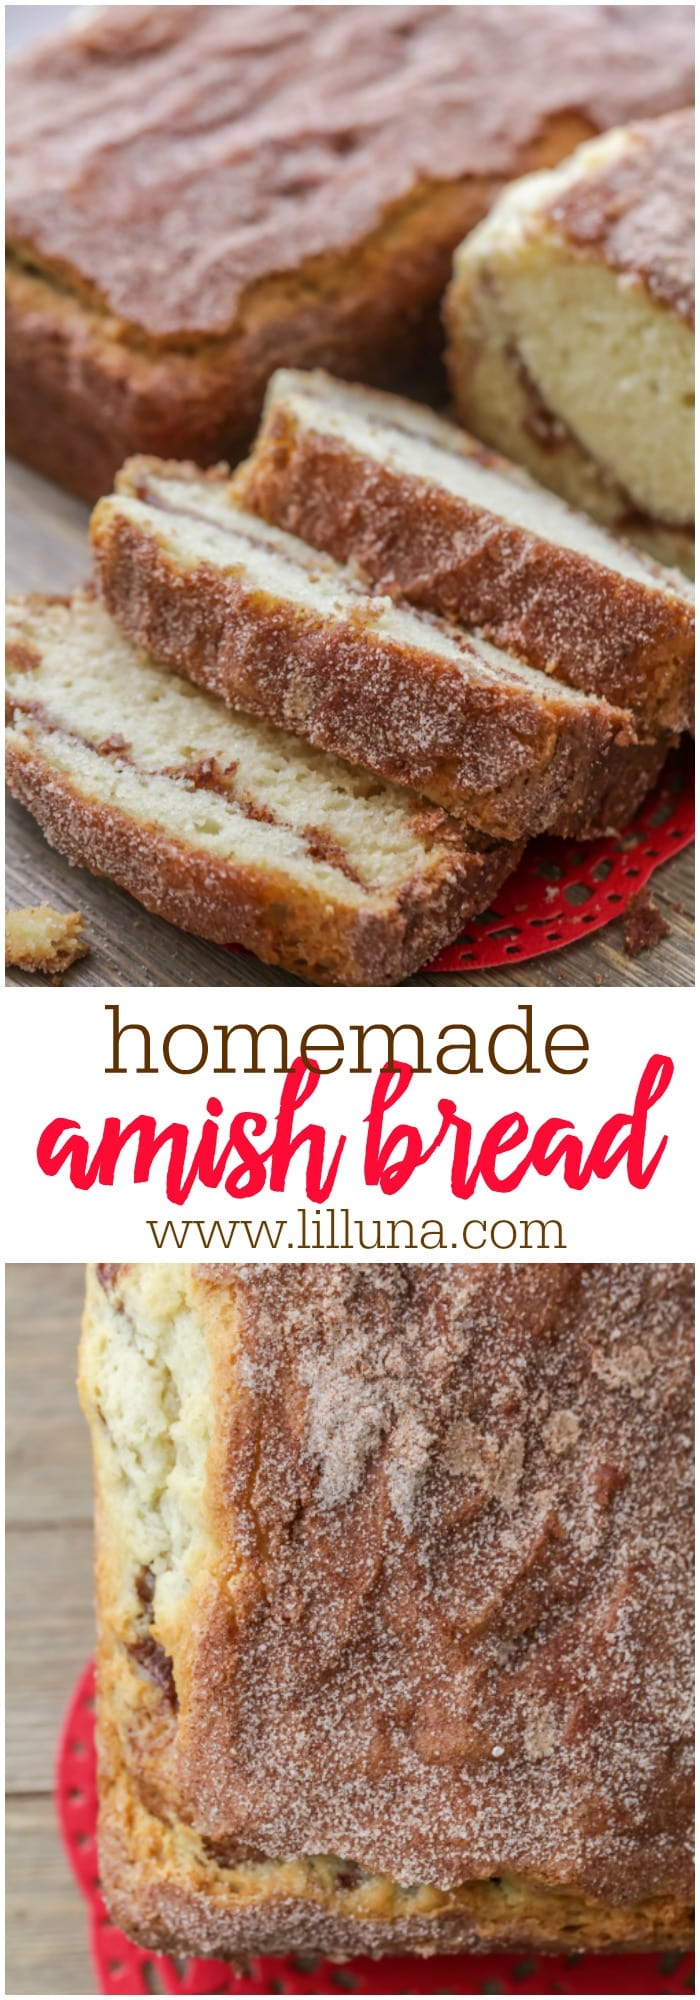 Homemade Amish Bread - seriously one of the easiest bread recipes you'll ever try! Super soft and fluffy bread covered in an irresistible cinnamon sugar mixture! The secret to the fluffiness is the buttermilk in the dough!